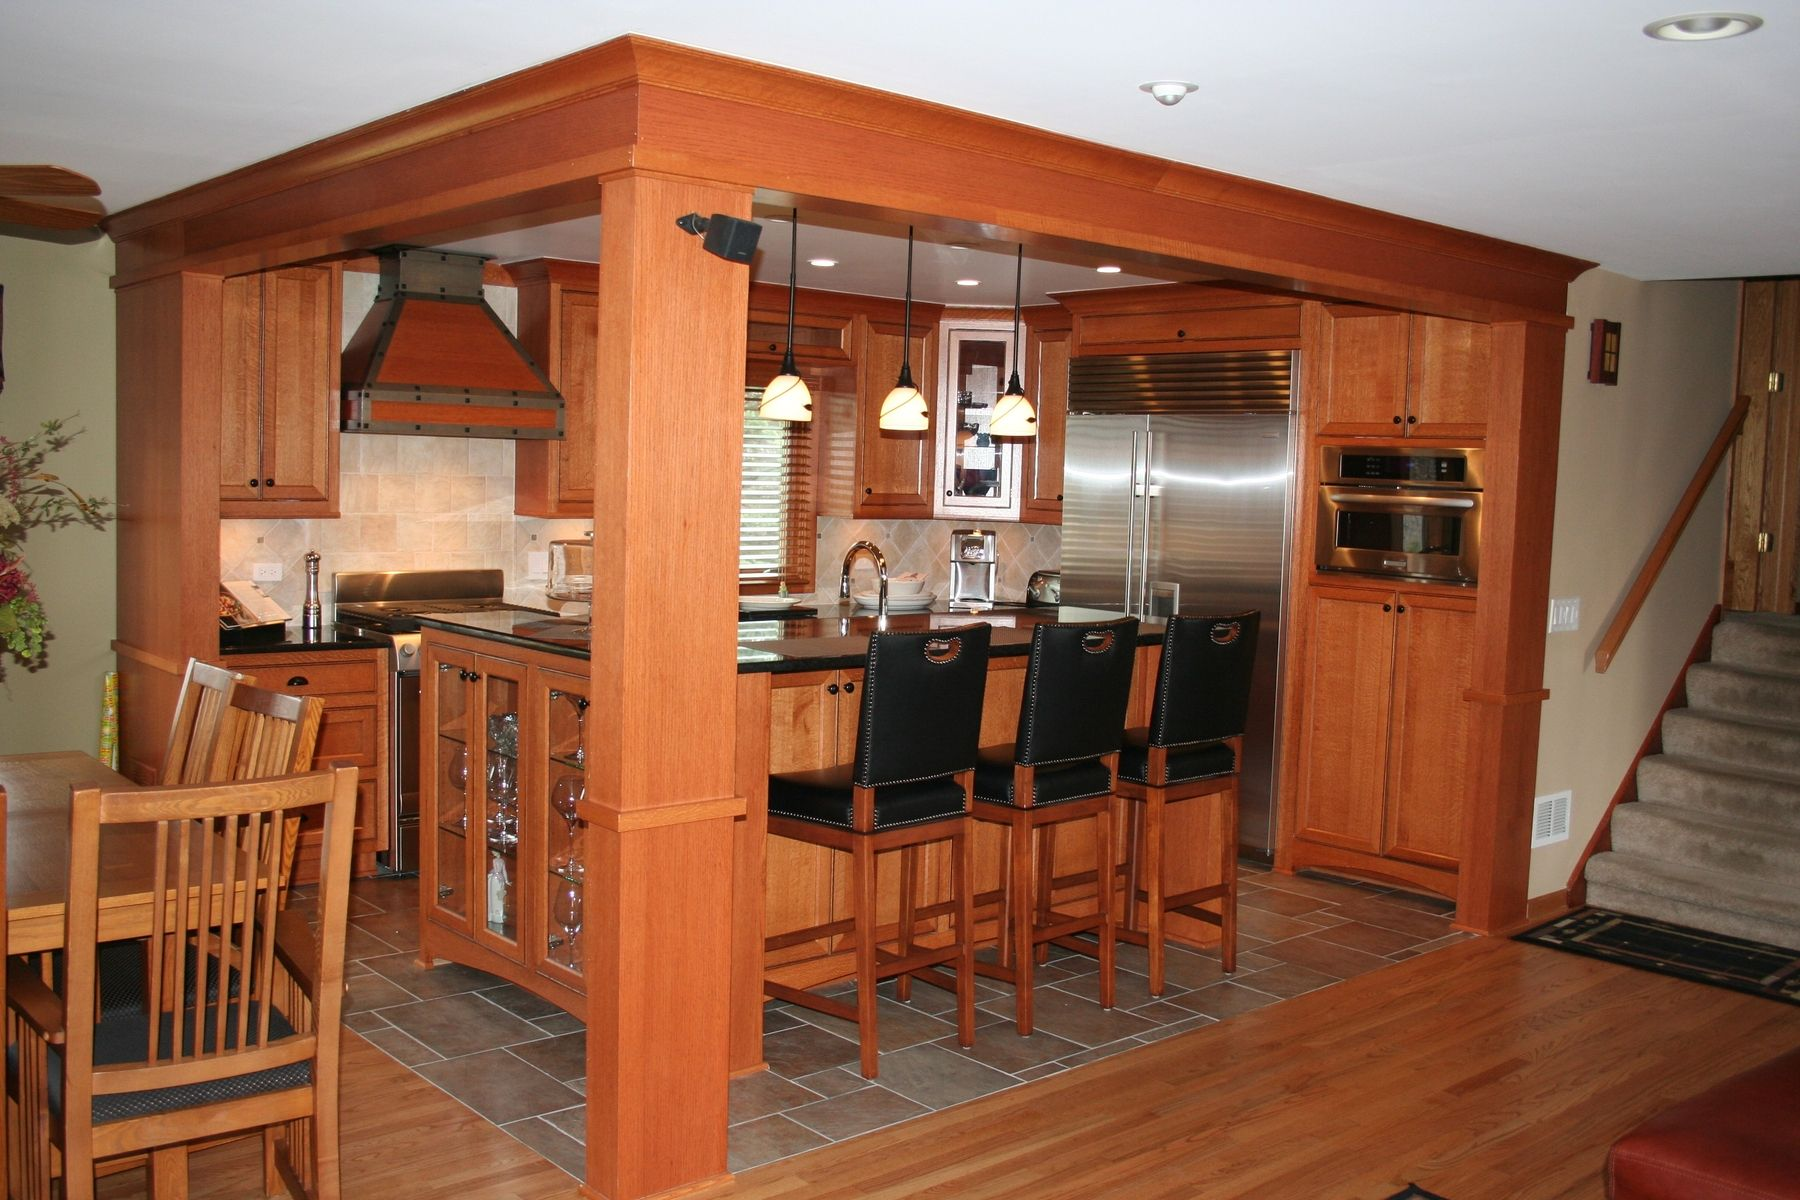 Handmade custom quarter sawn oak kitchen cabinets by jr 39 s custom cabinets - Custom made cabinet ...